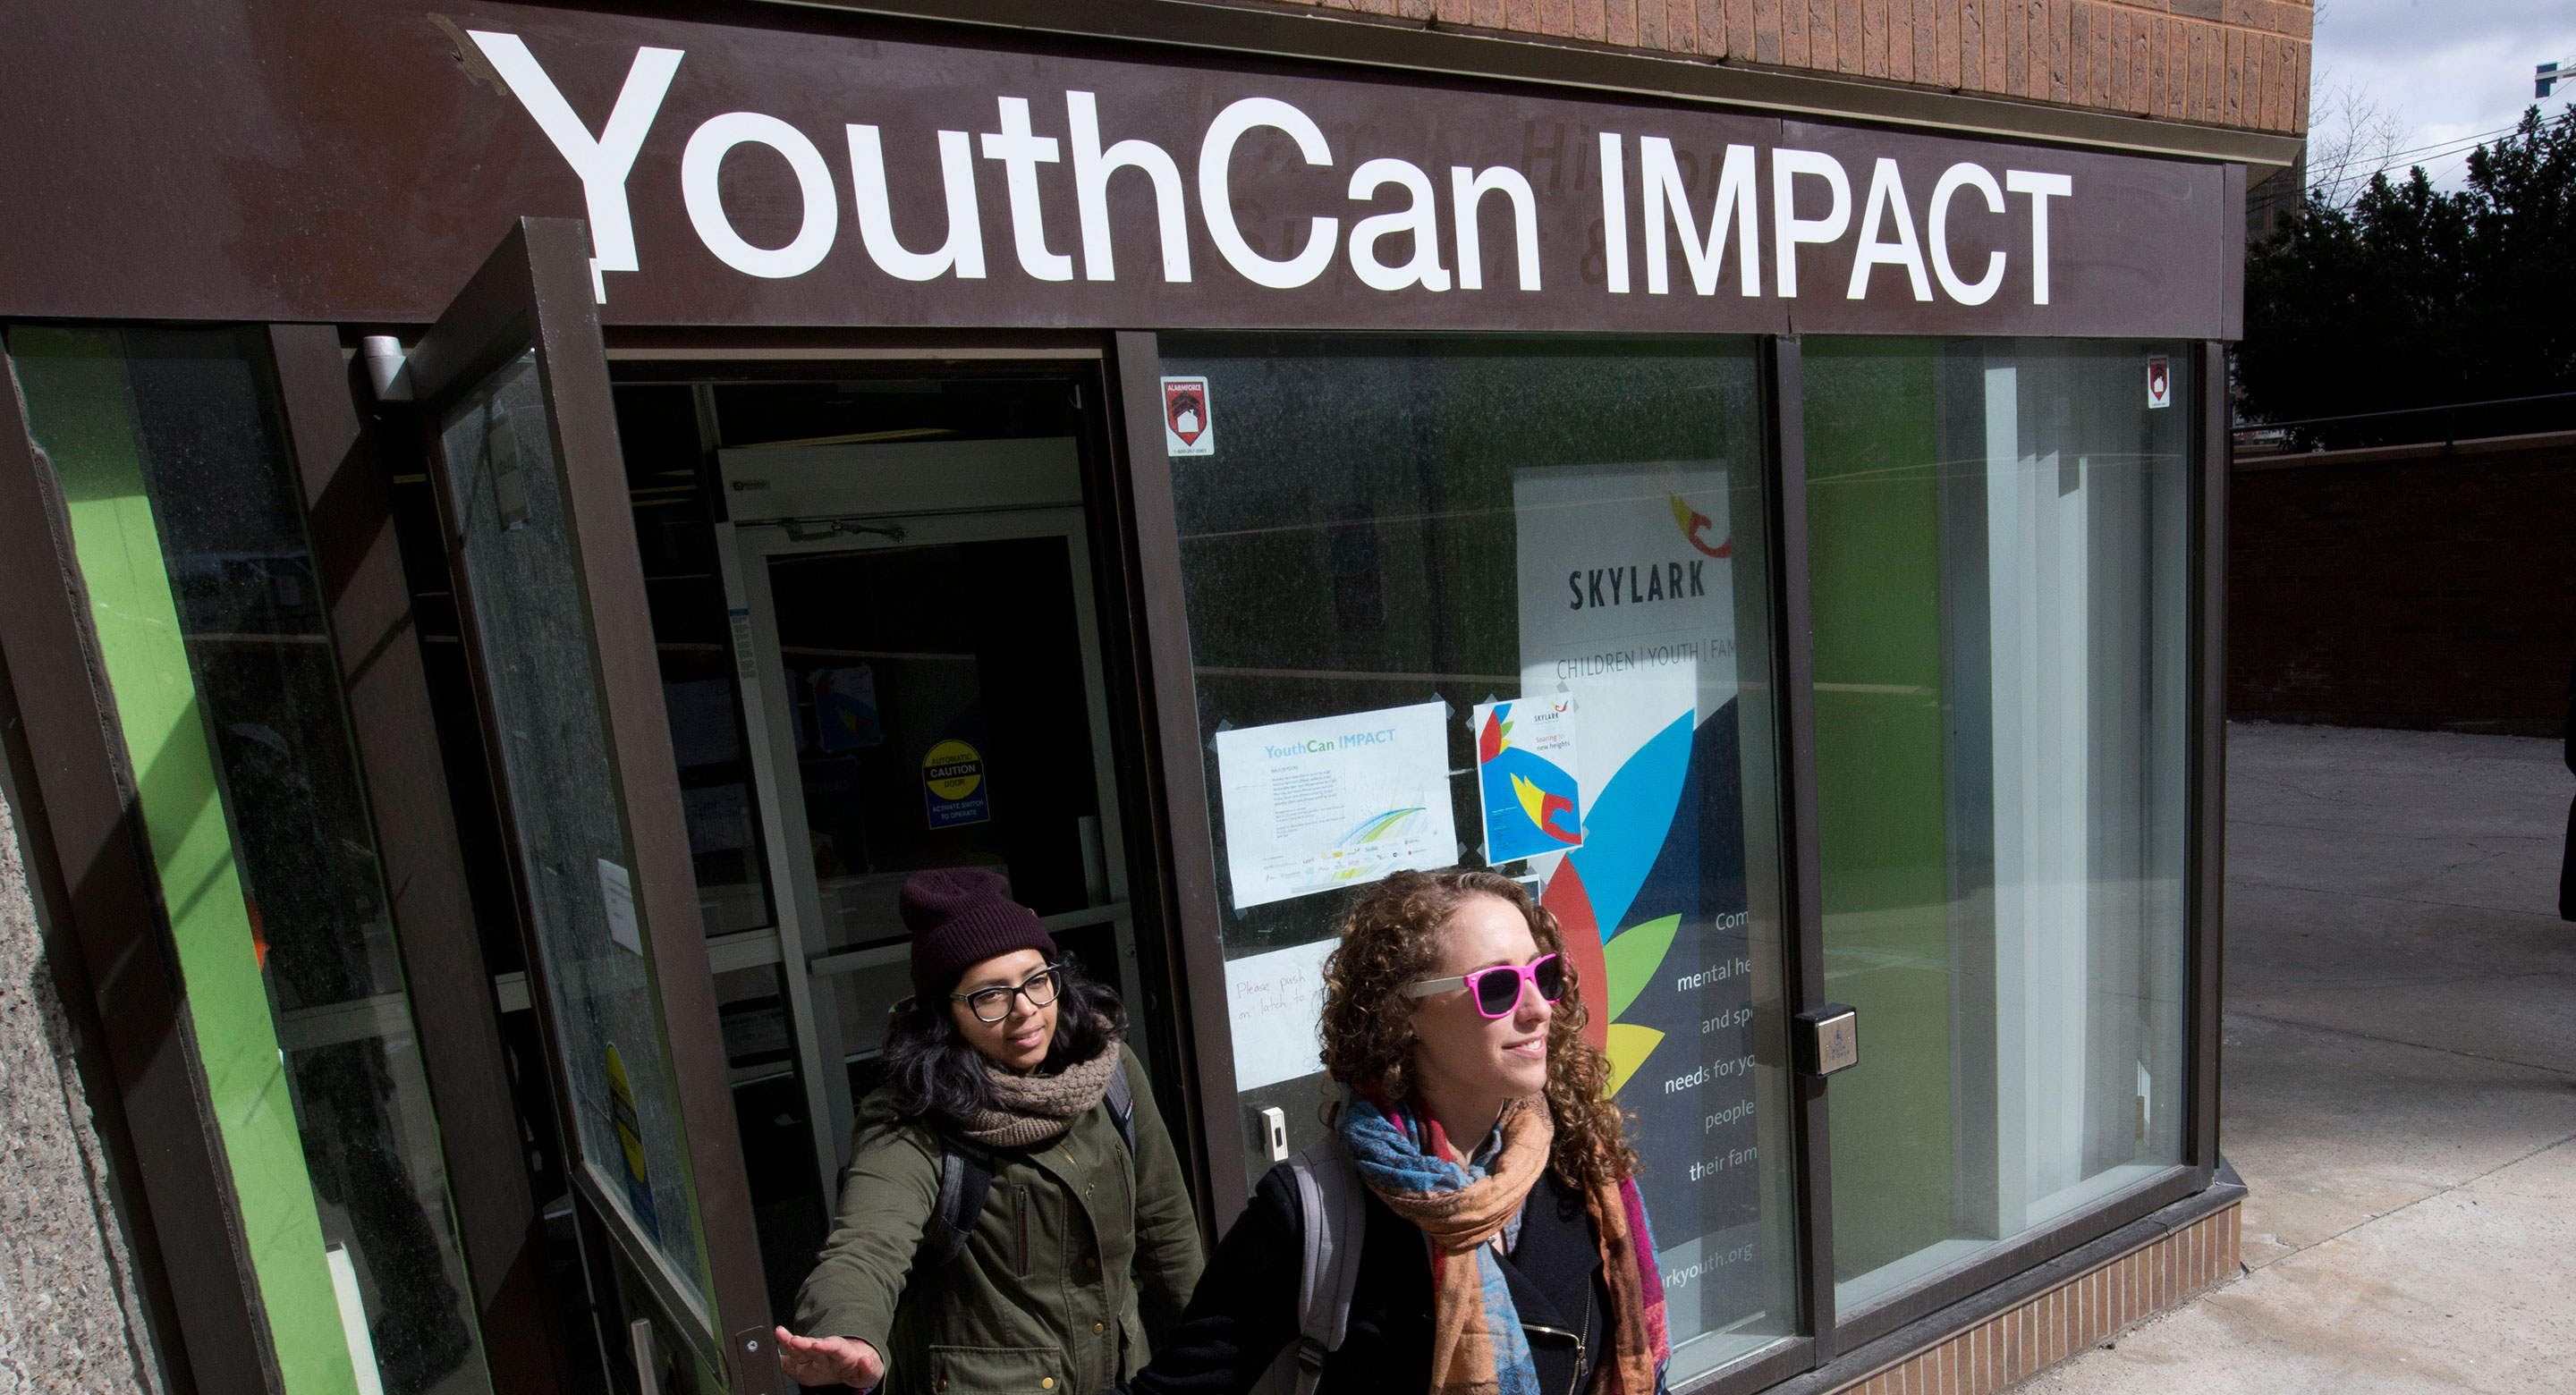 YouthCan IMPACT engaged young people early and often in its creation